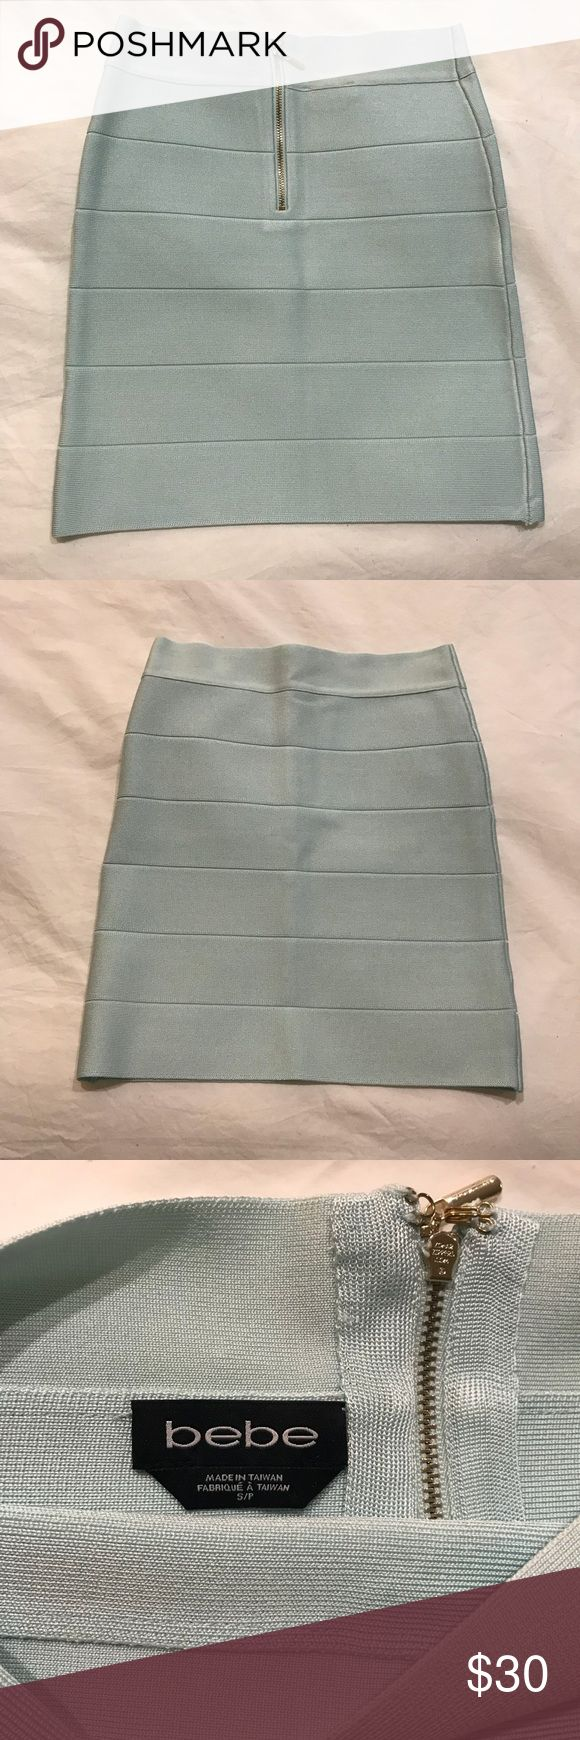 Bebe bodycon skirt Worn 1x. Like new! This slimming mini skirt is in a pale robins egg blue color — just gorgeous. The photos aren't really doing it justice and the shadows are making it seem dull but it's a bright yet pale aqua! Can be worn with a crop top in the summer or a sweater in the winter... try it with a sweater and high boots, one of my favorite looks! Pet free smoke free home :) bebe Skirts Mini